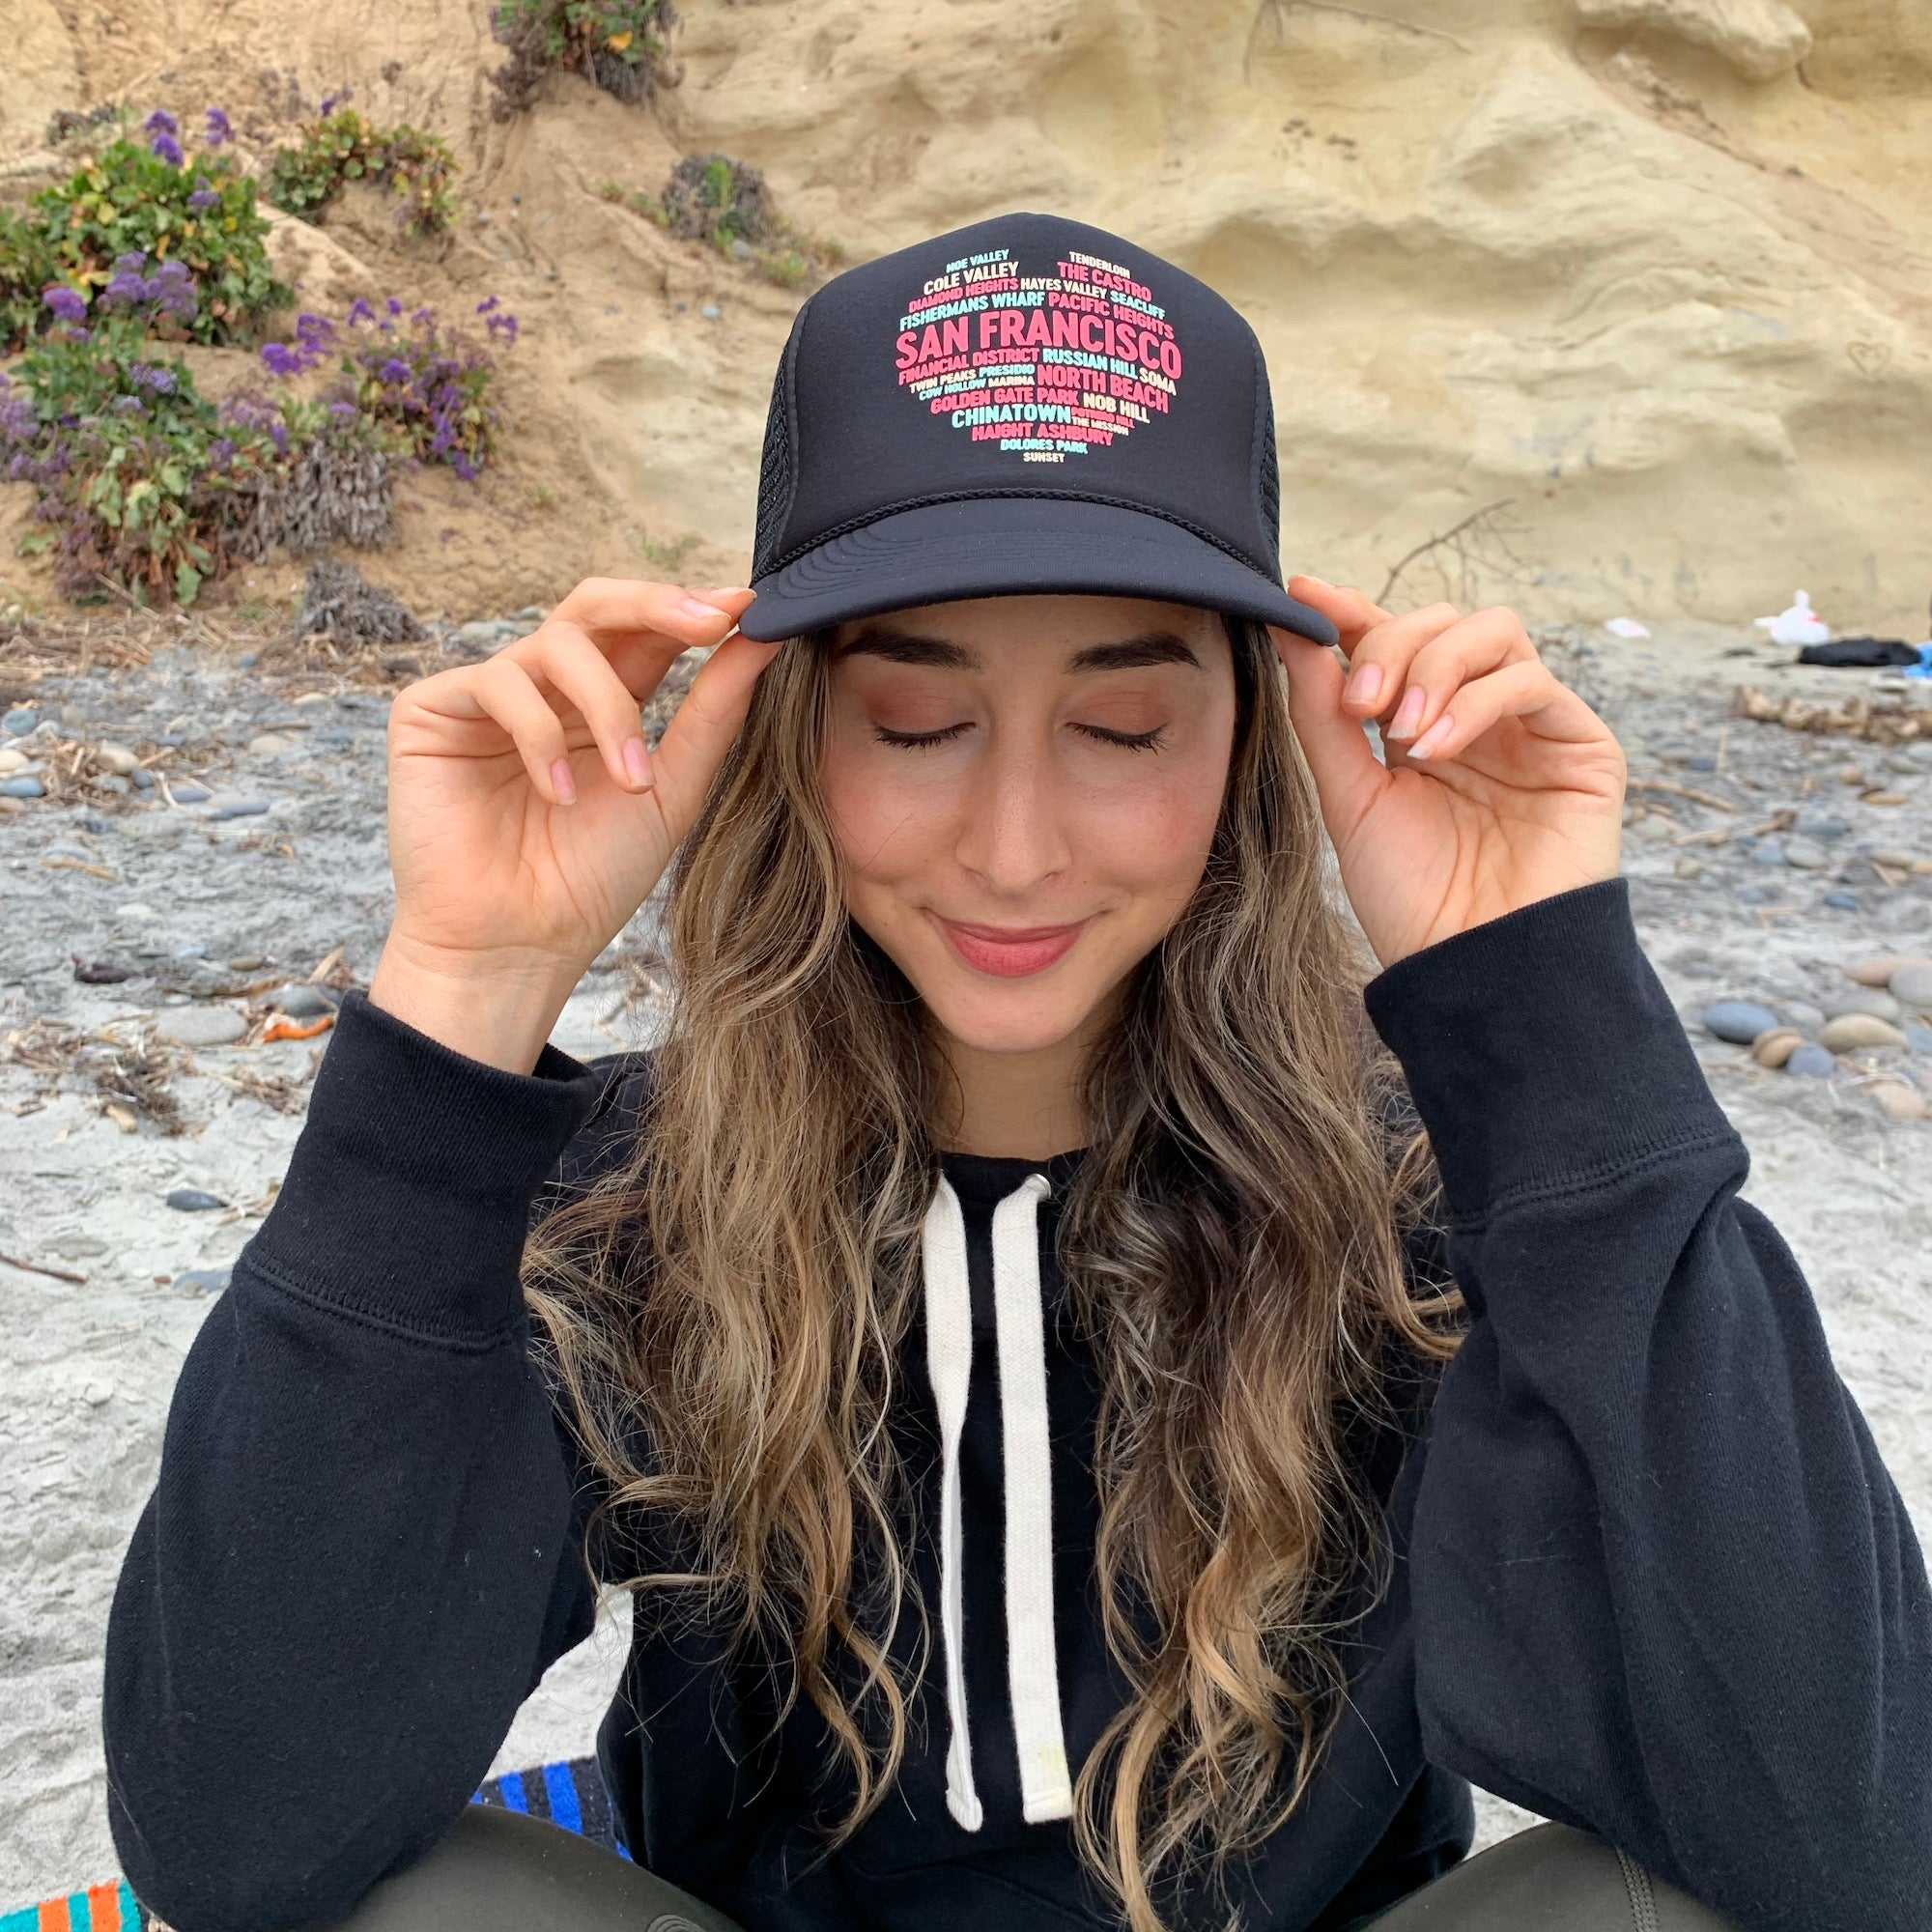 San Francisco Community Heart Trucker Hat - All The Famous Streets and Neighbourhoods of SF - Unisex - One Size Fits Most - Black with Pastel Lettering